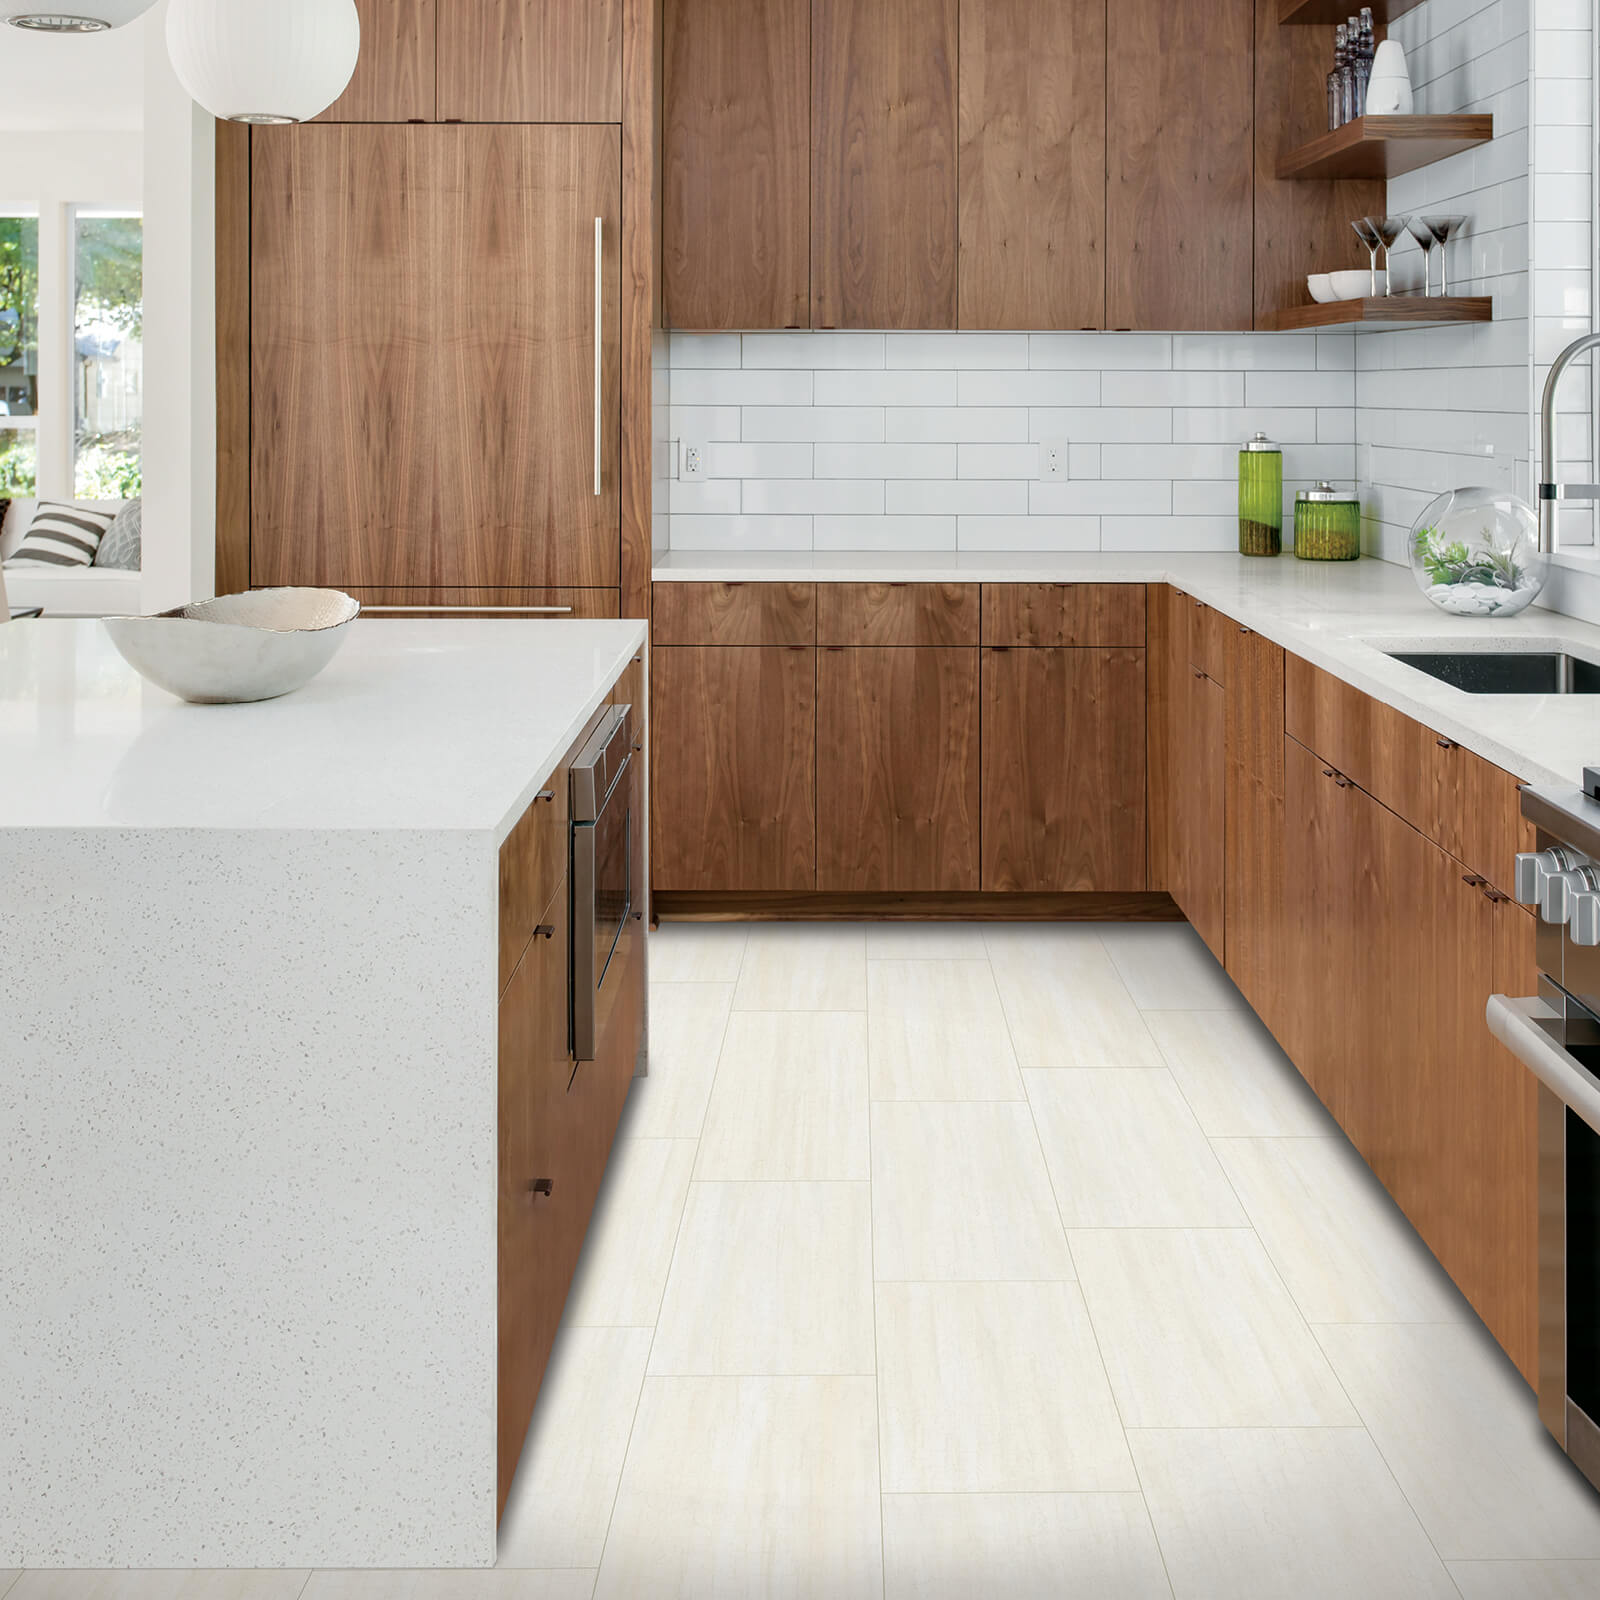 Kitchen Laminate Flooring | Wacky's Flooring